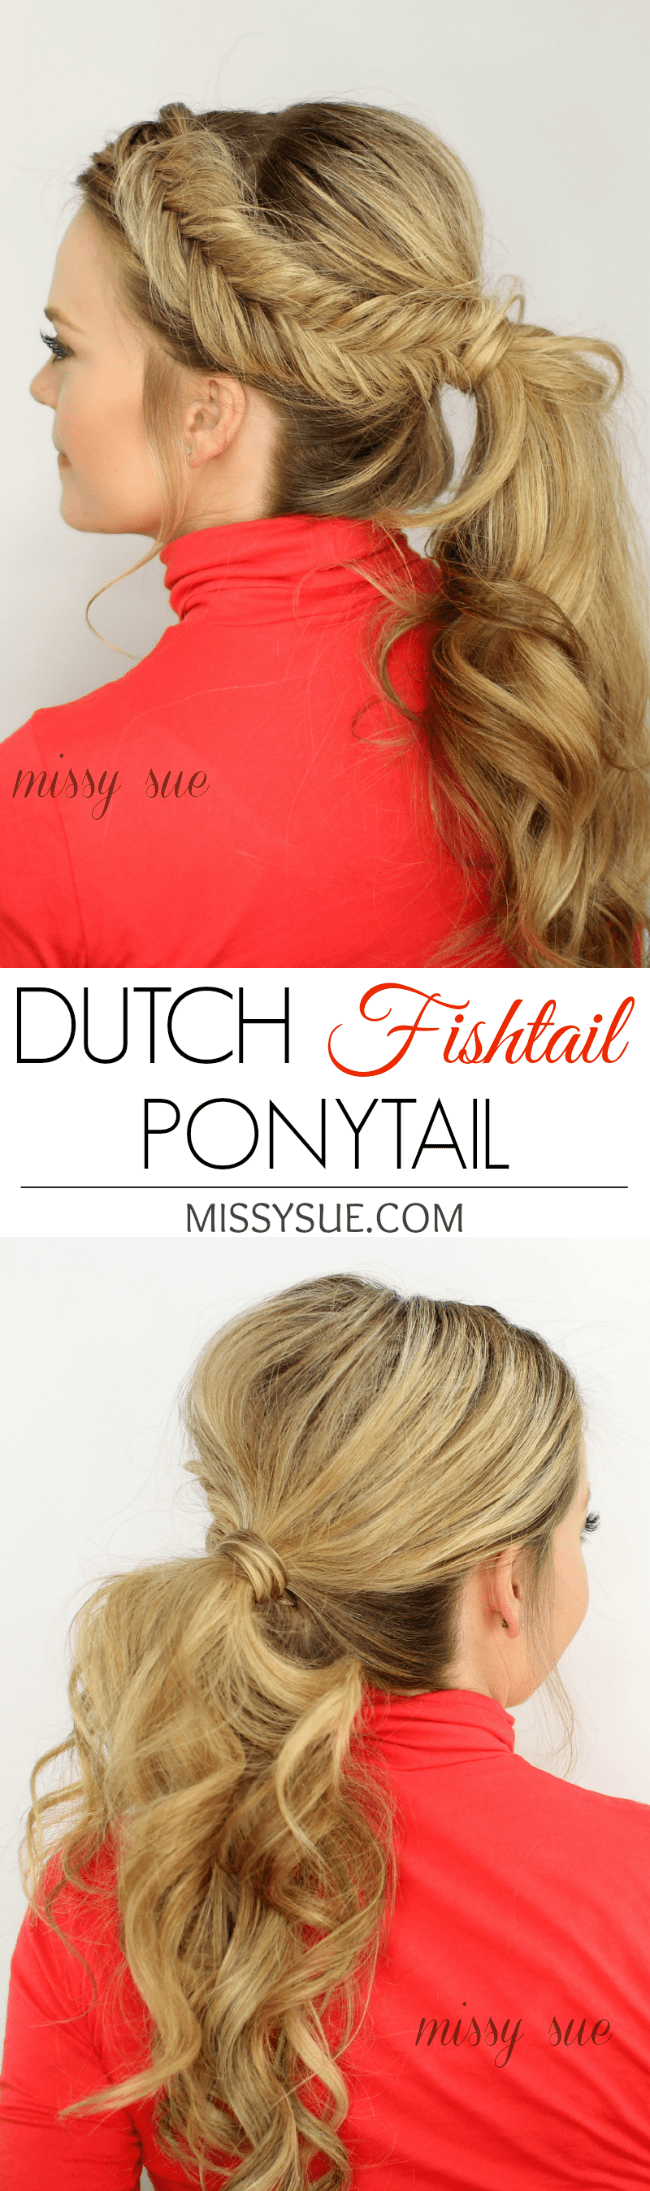 Dutch Fishtail Pony